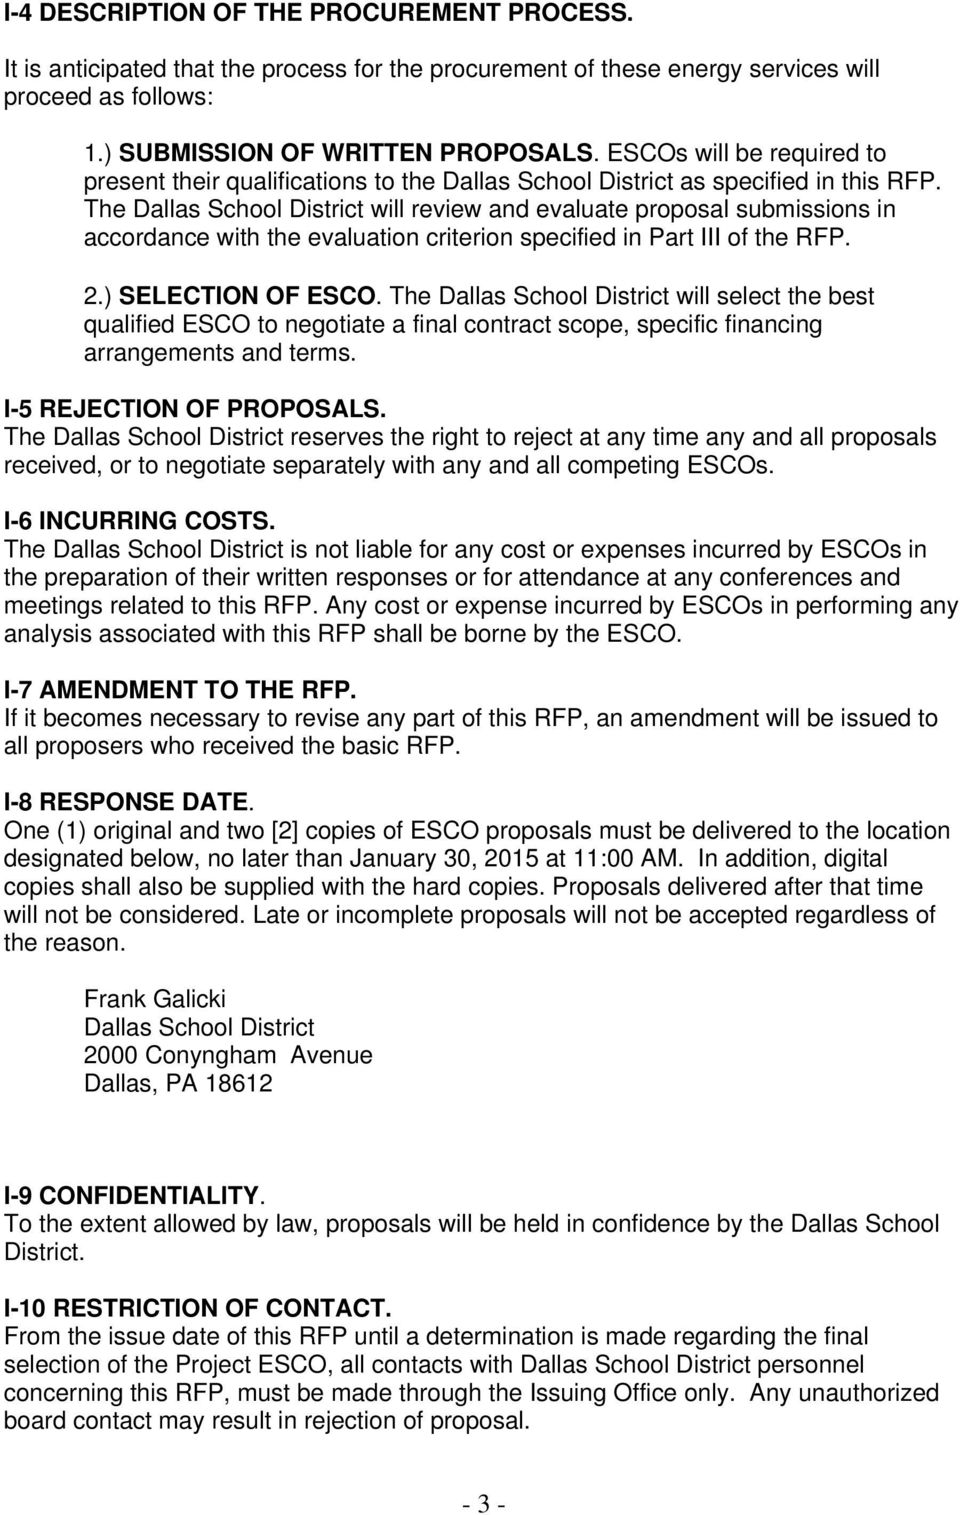 The Dallas School District will review and evaluate proposal submissions in accordance with the evaluation criterion specified in Part III of the RFP. 2.) SELECTION OF ESCO.